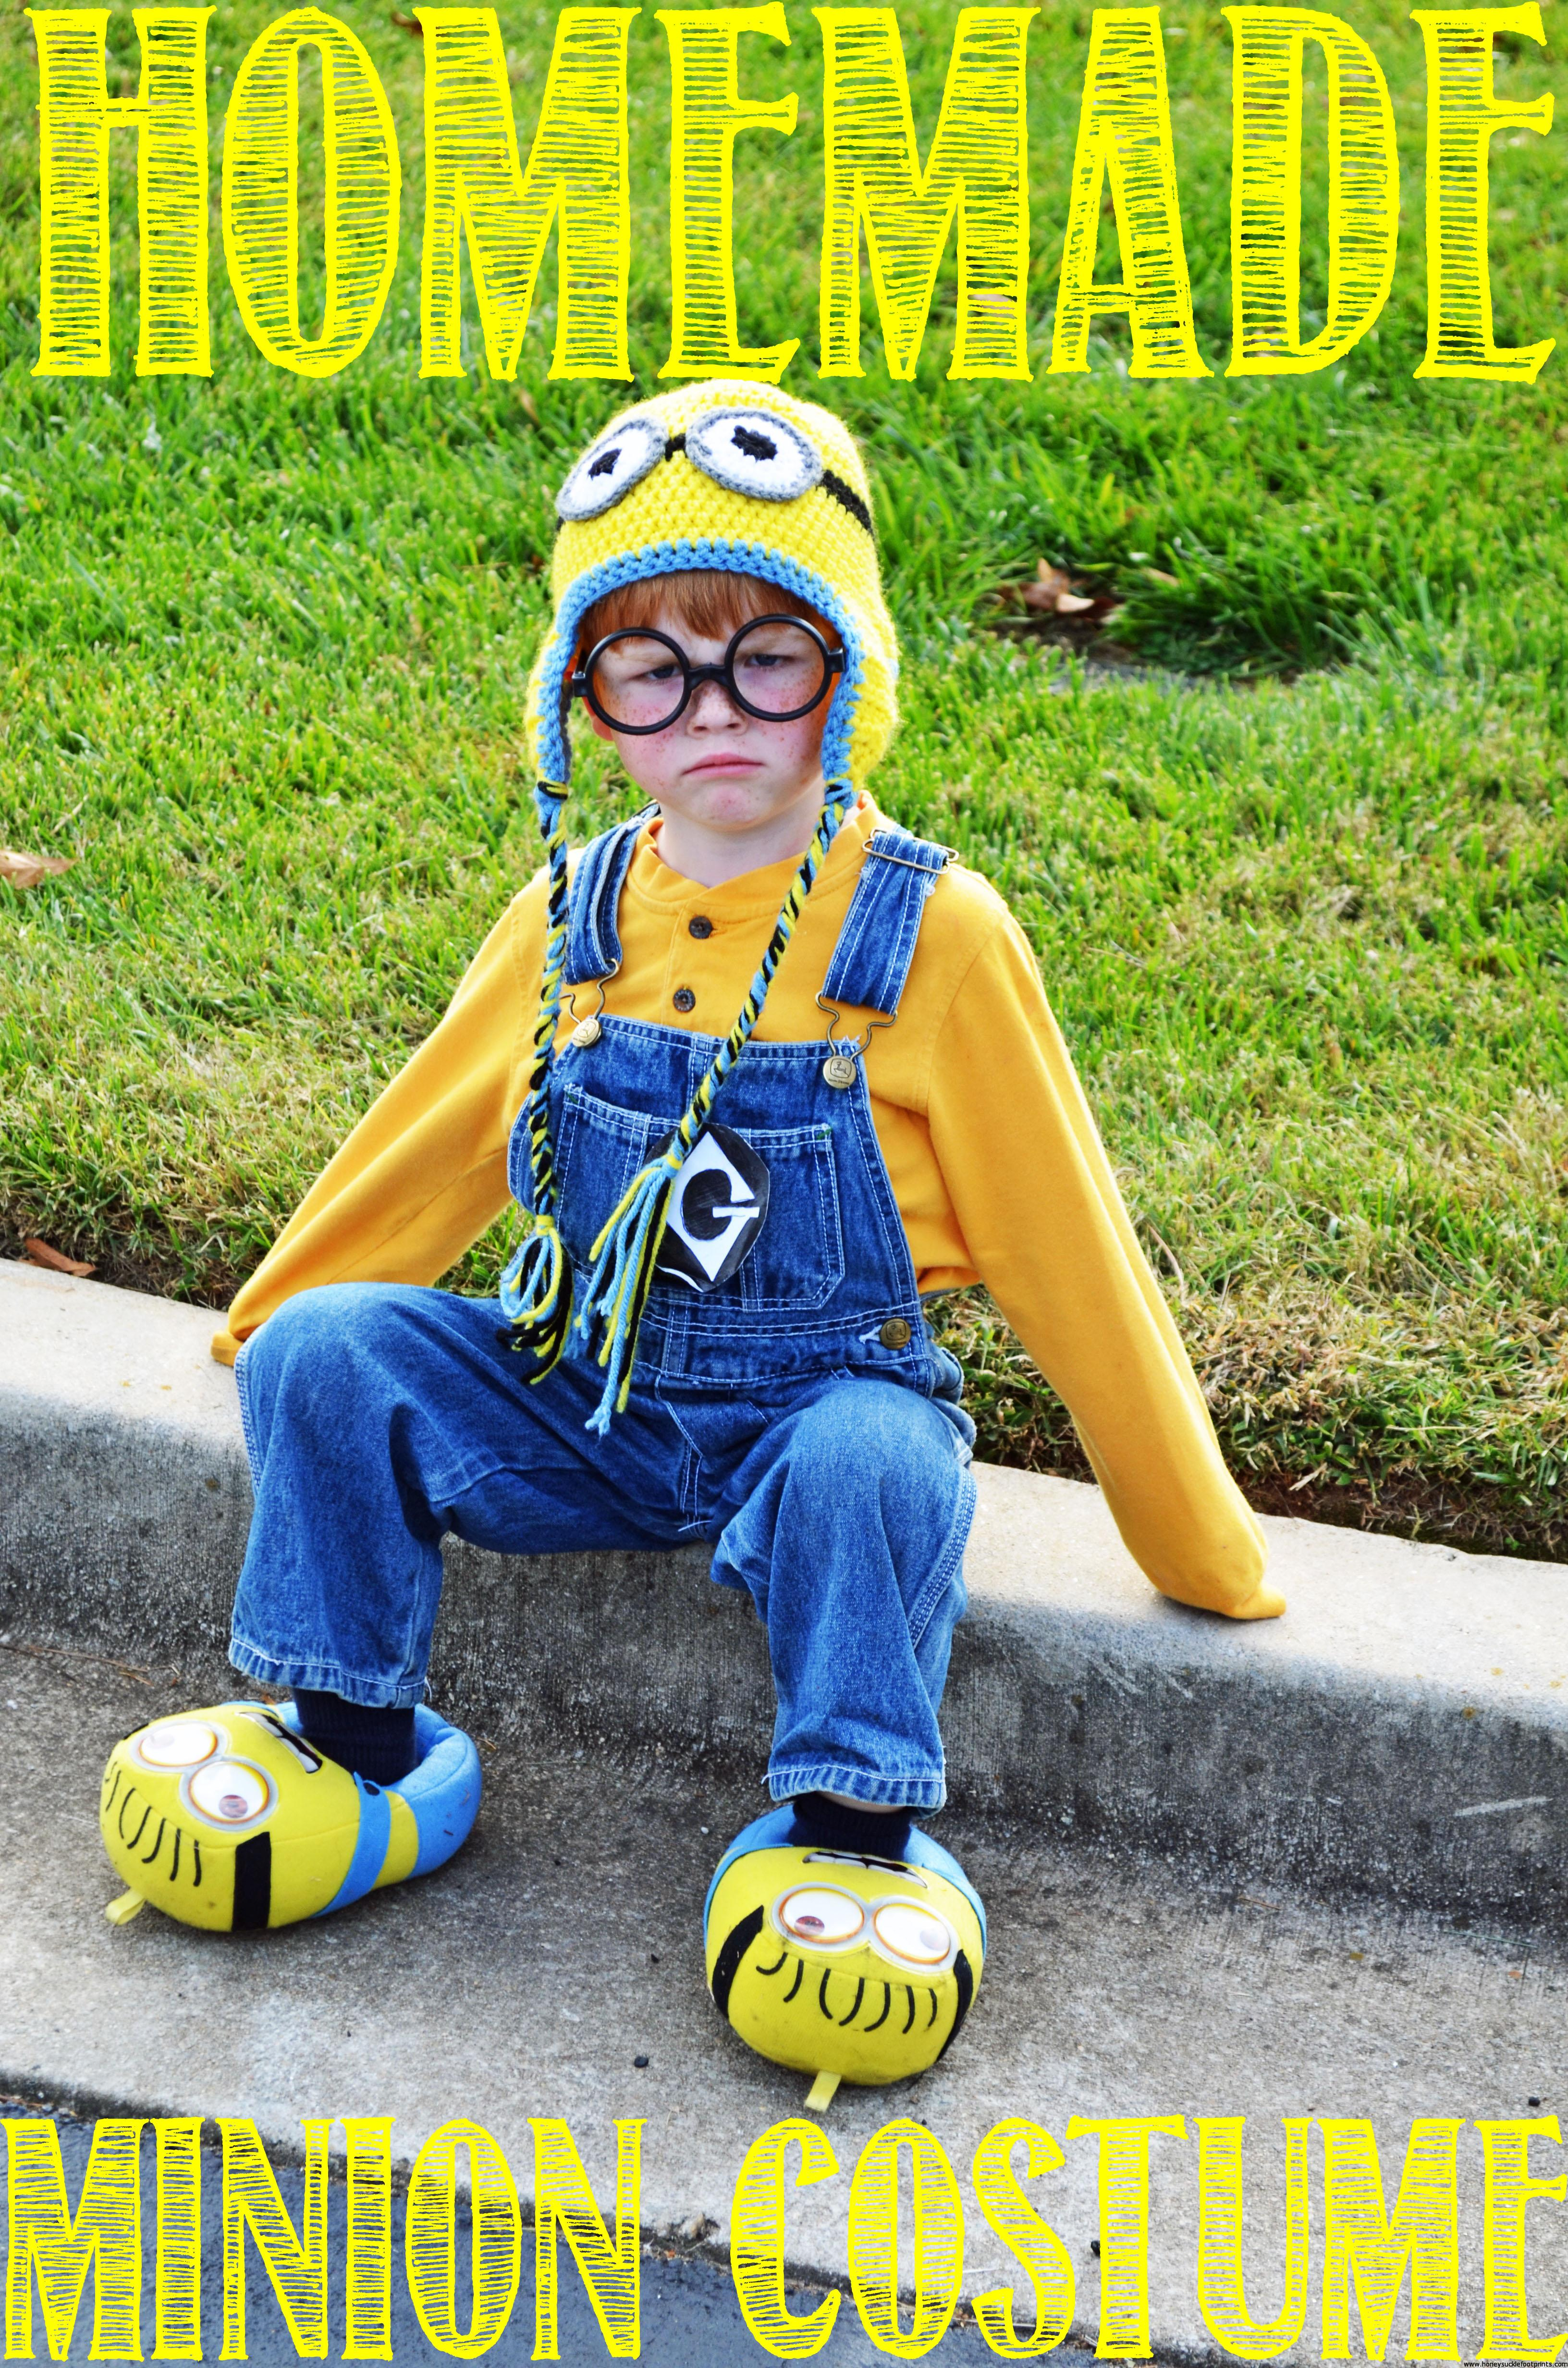 How to make the BEST homemade Minion costume for Halloween or just for fun!  sc 1 st  Honeysuckle Footprints & Homemade Minion Costume for Halloween! - Honeysuckle Footprints